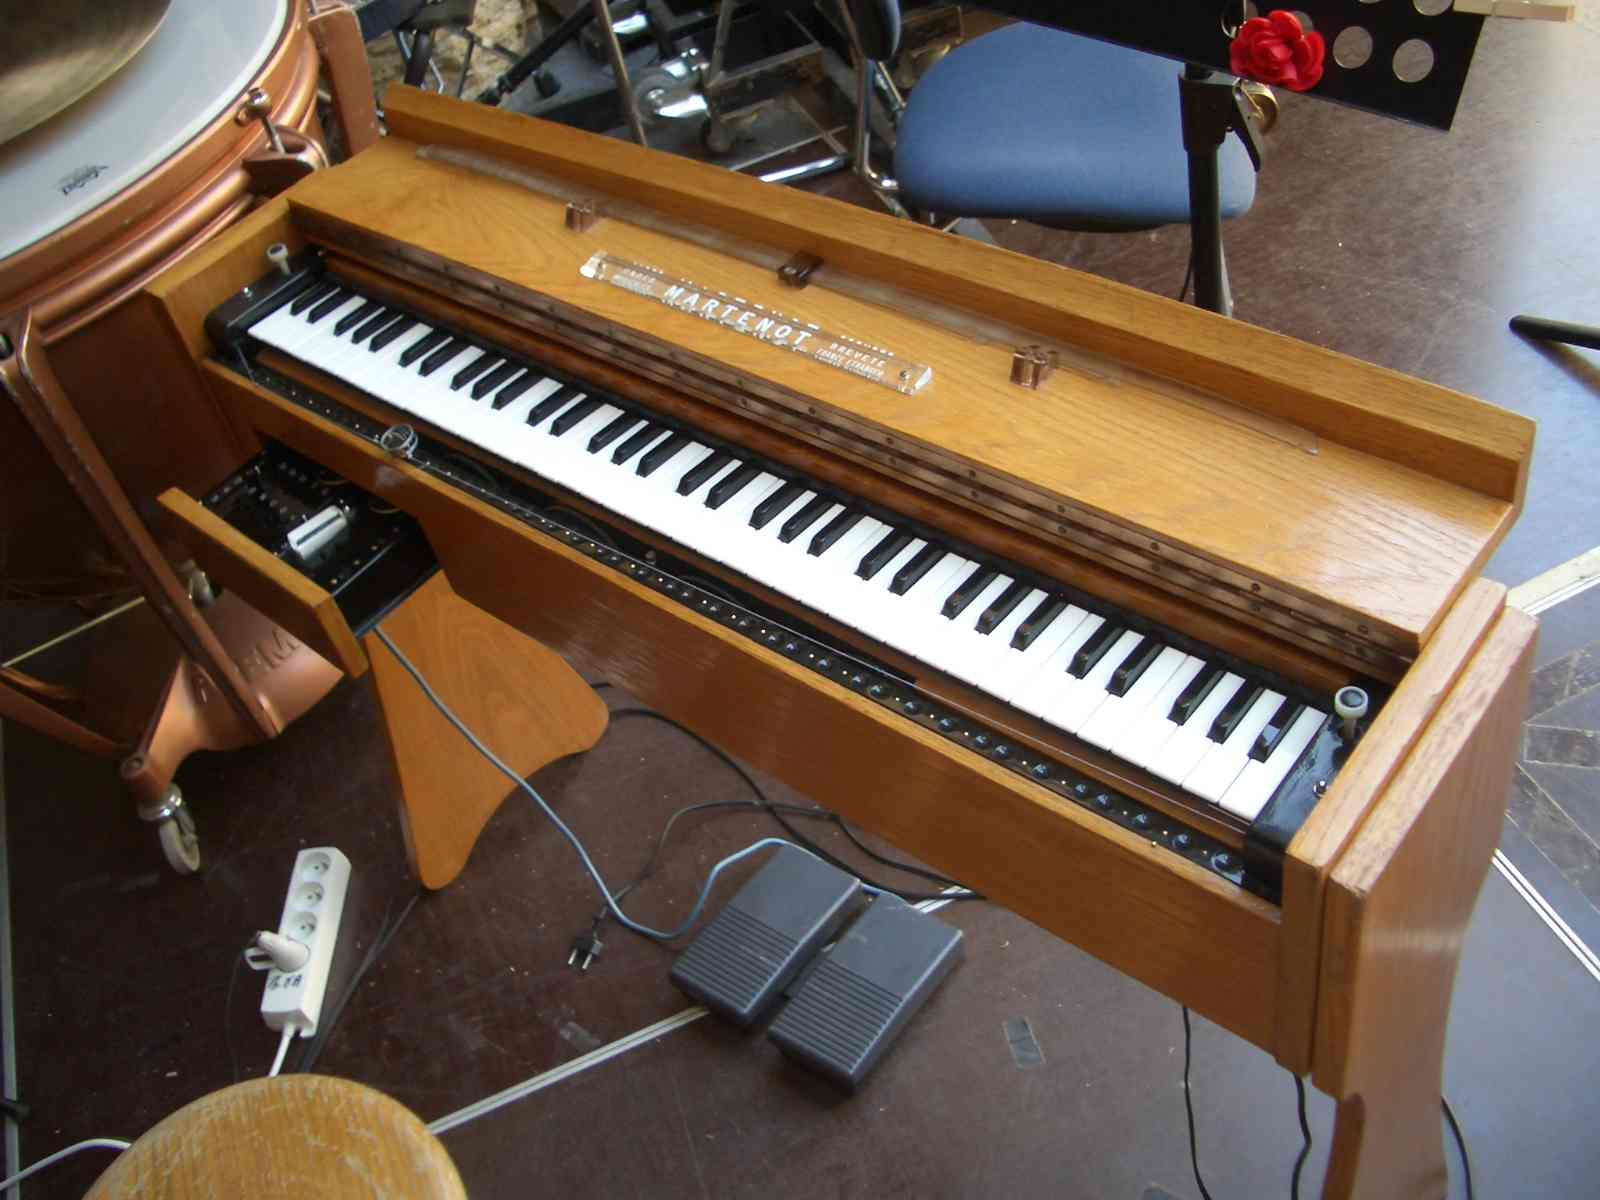 Ondes Martenot Thomas Bloch The Instrument